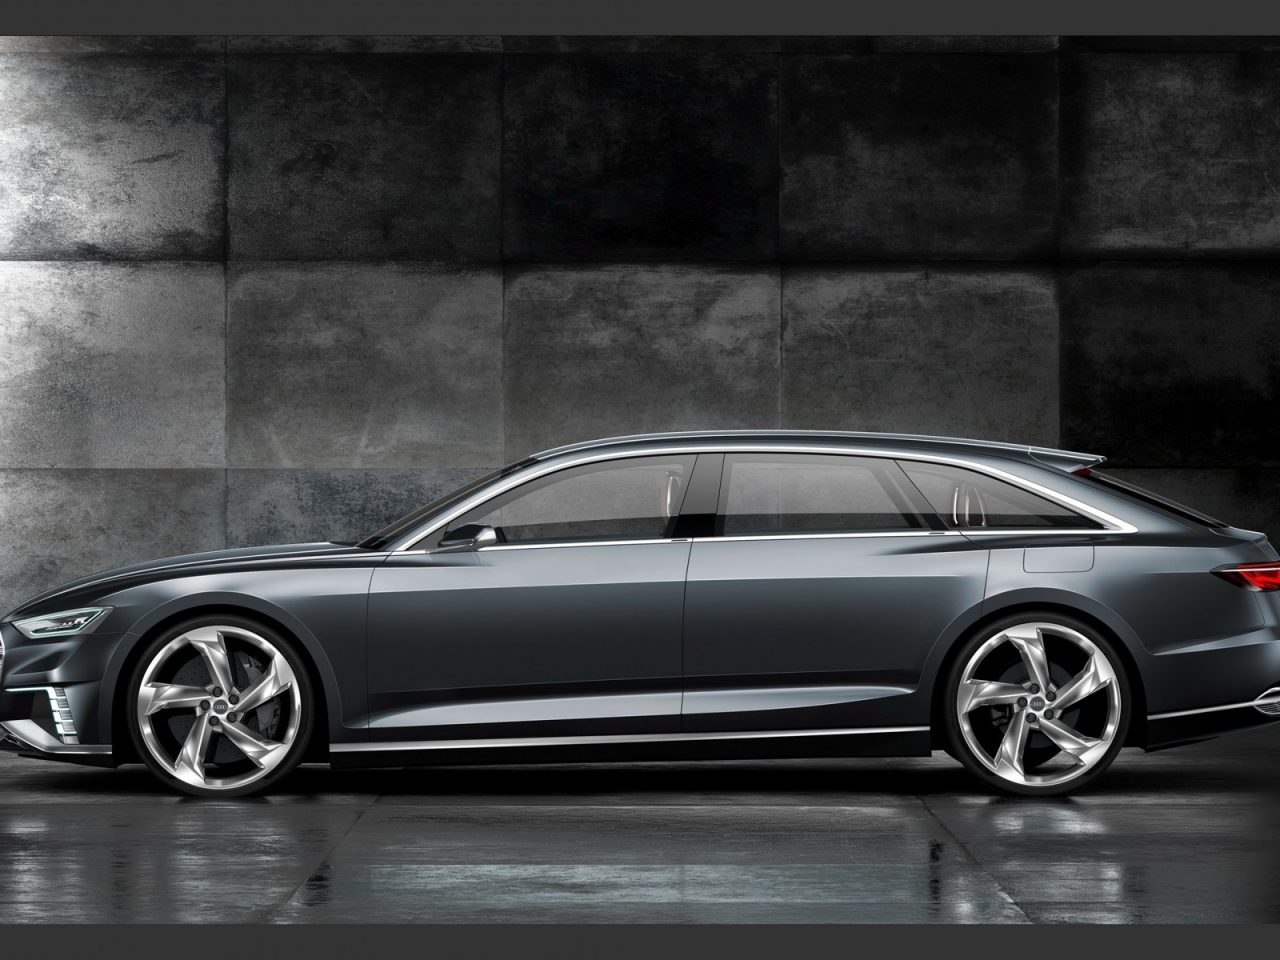 Audi Prologue Side View for 1280 x 960 resolution